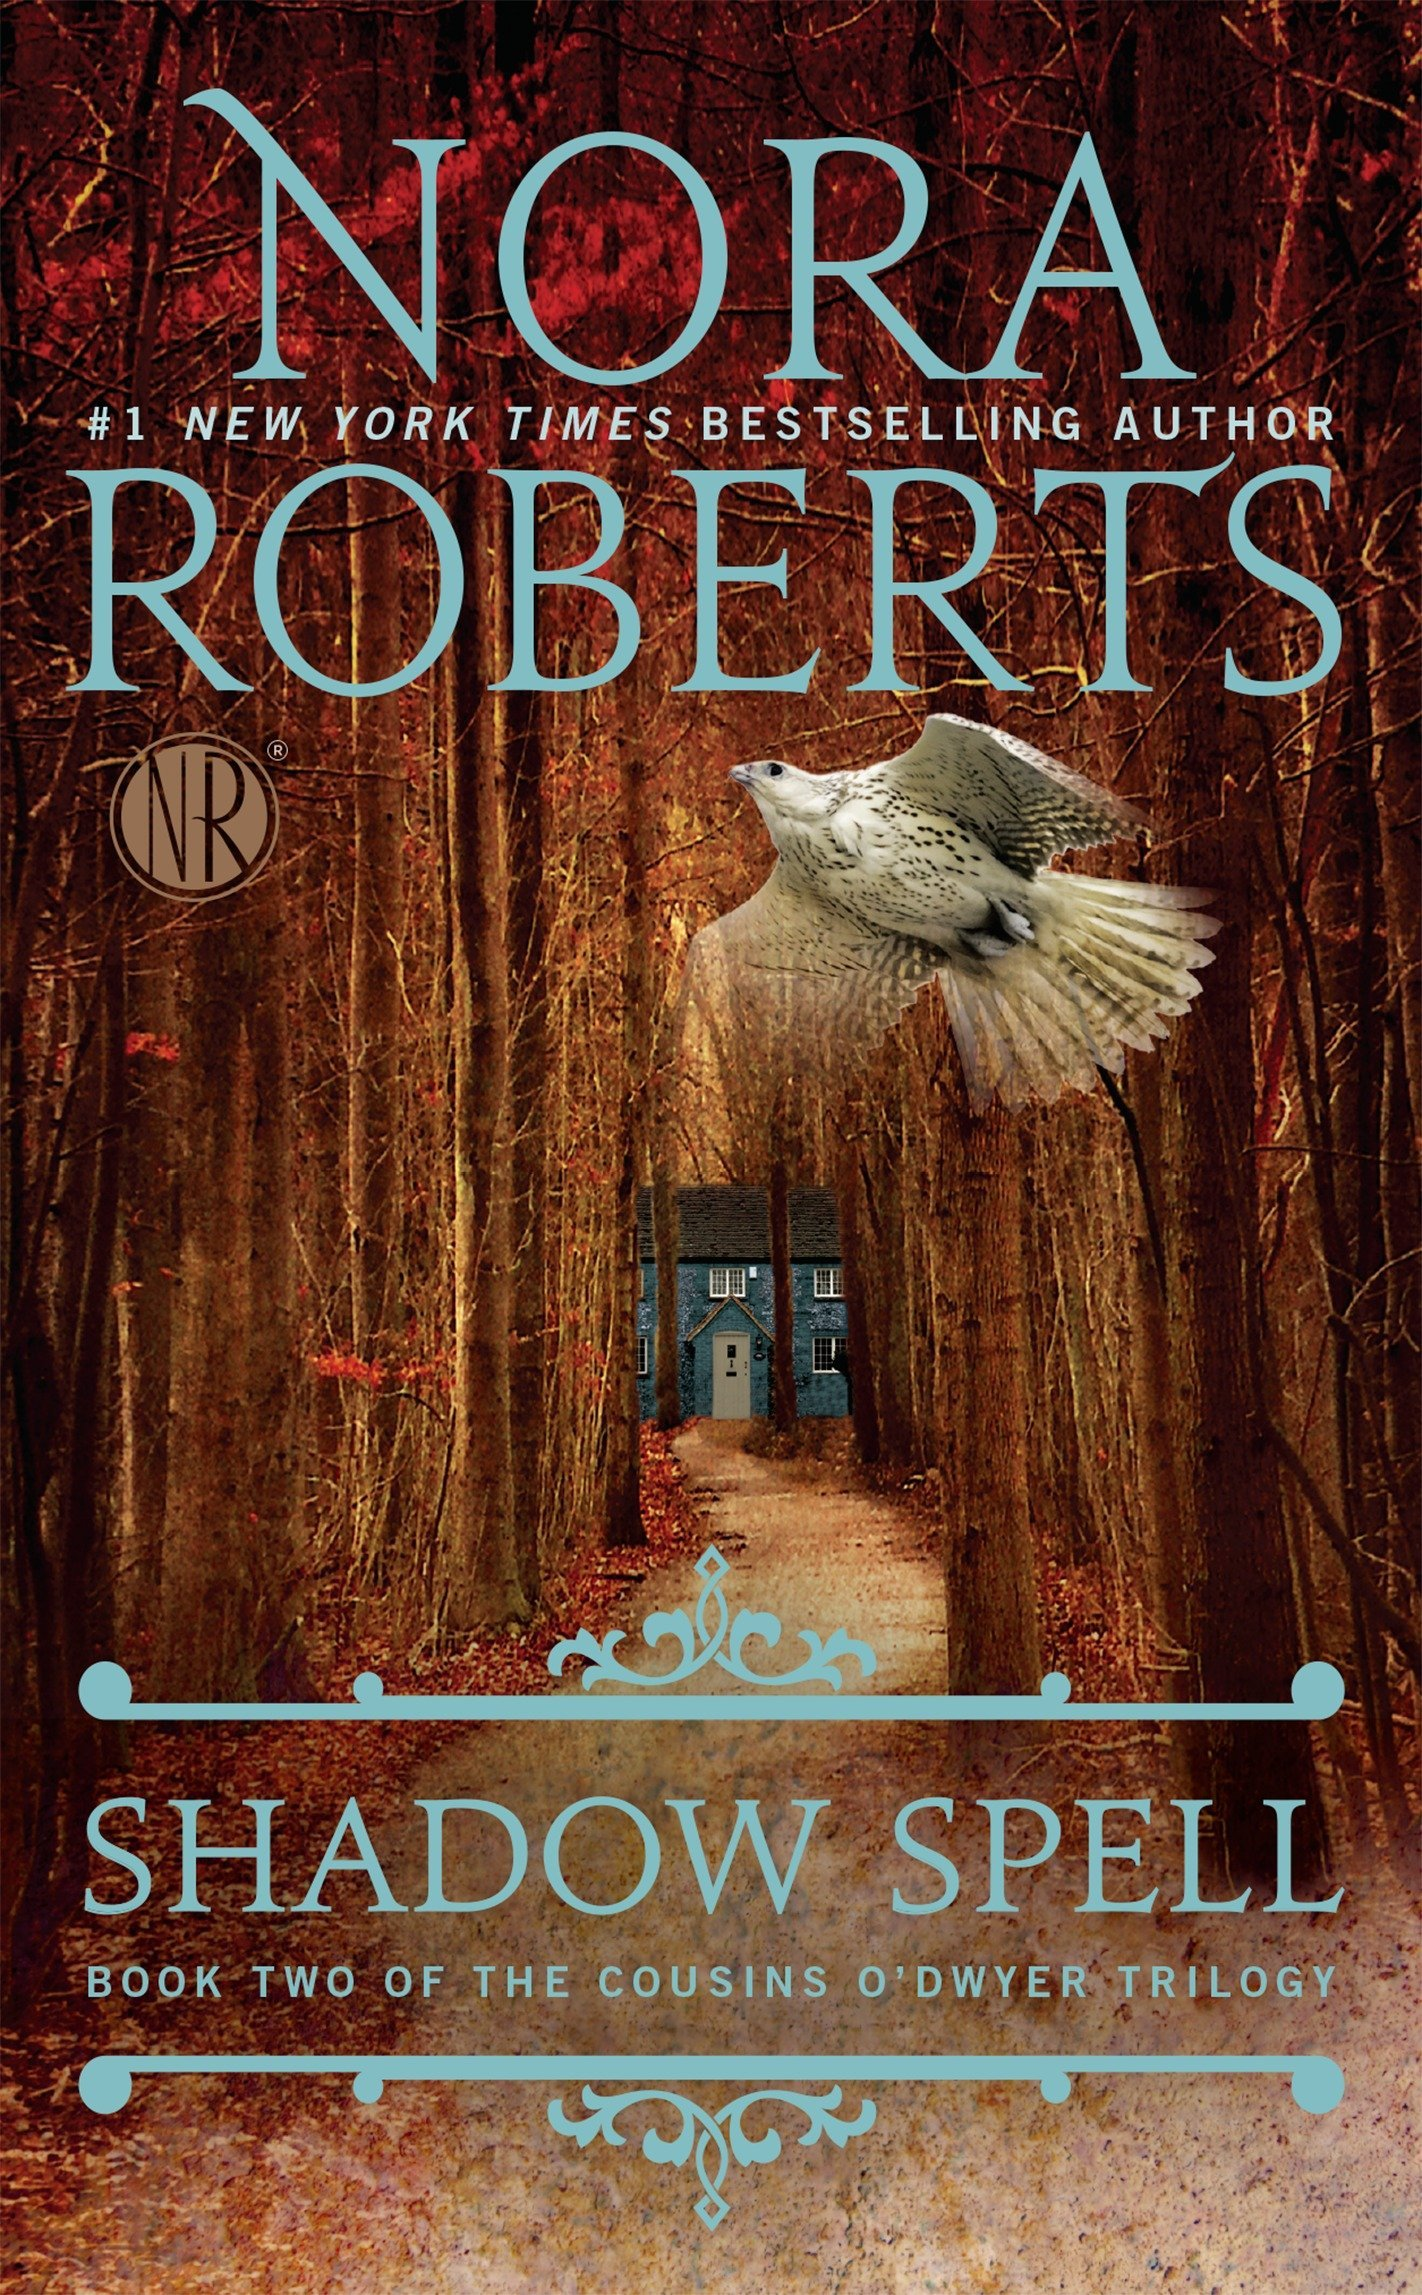 The official blog for Nora Roberts and J.D. Robb readers